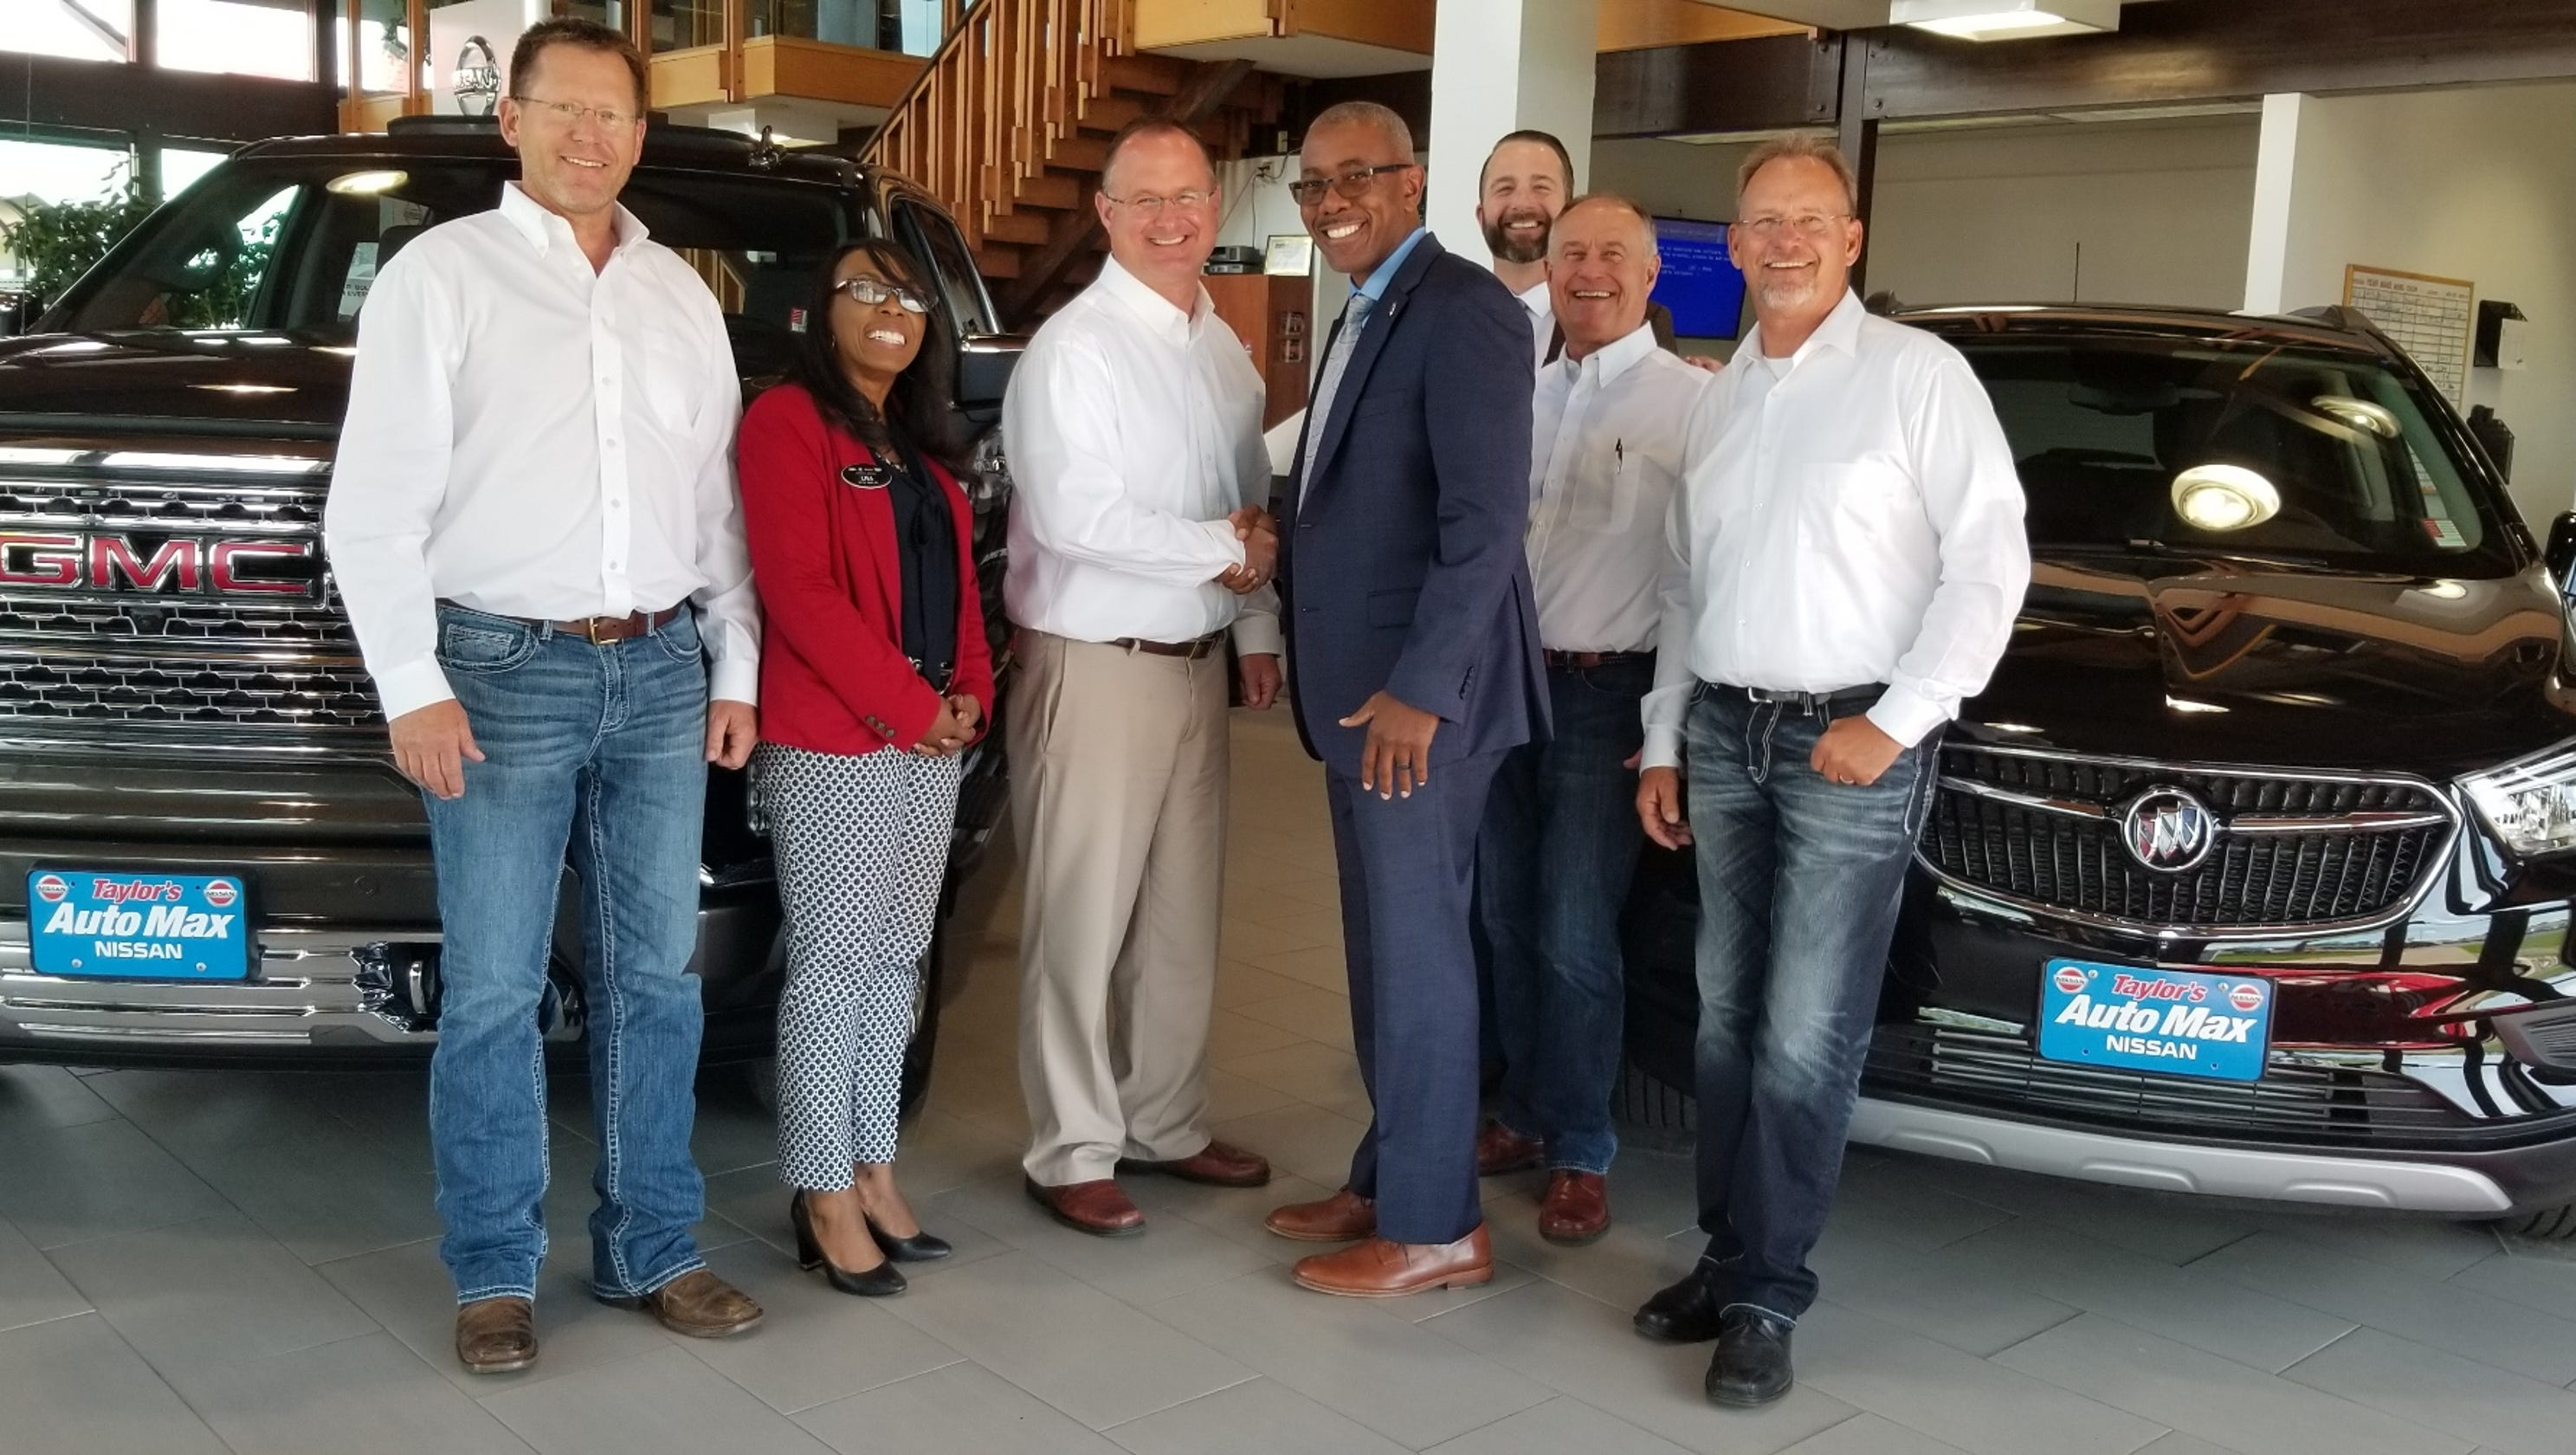 Lithia Great Falls >> Taylor's Auto Max buys Buick GMC franchise from downtown ...